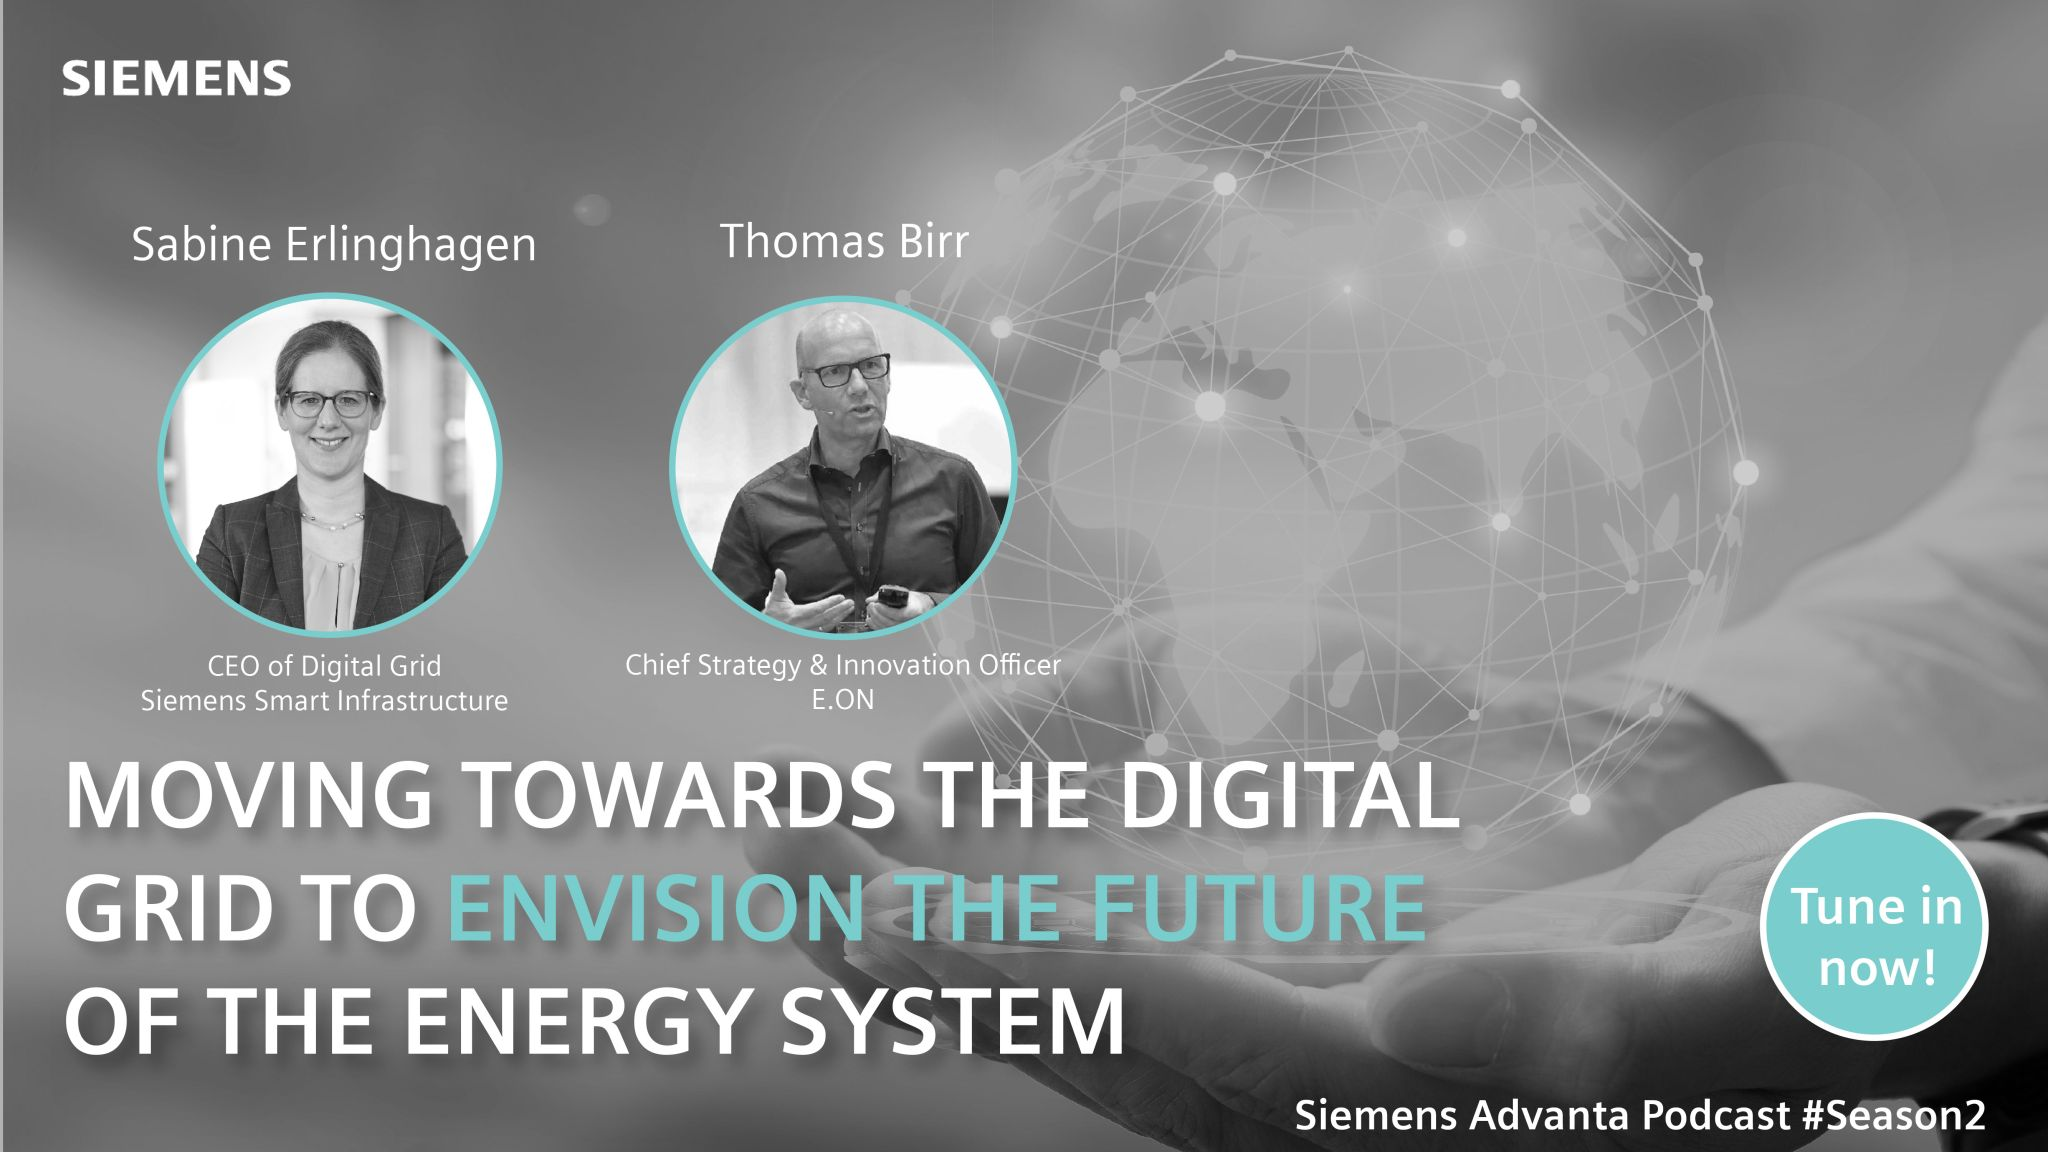 DIGITAL GRID – ENVISIONING THE FUTURE OF THE ENERGY SYSTEM